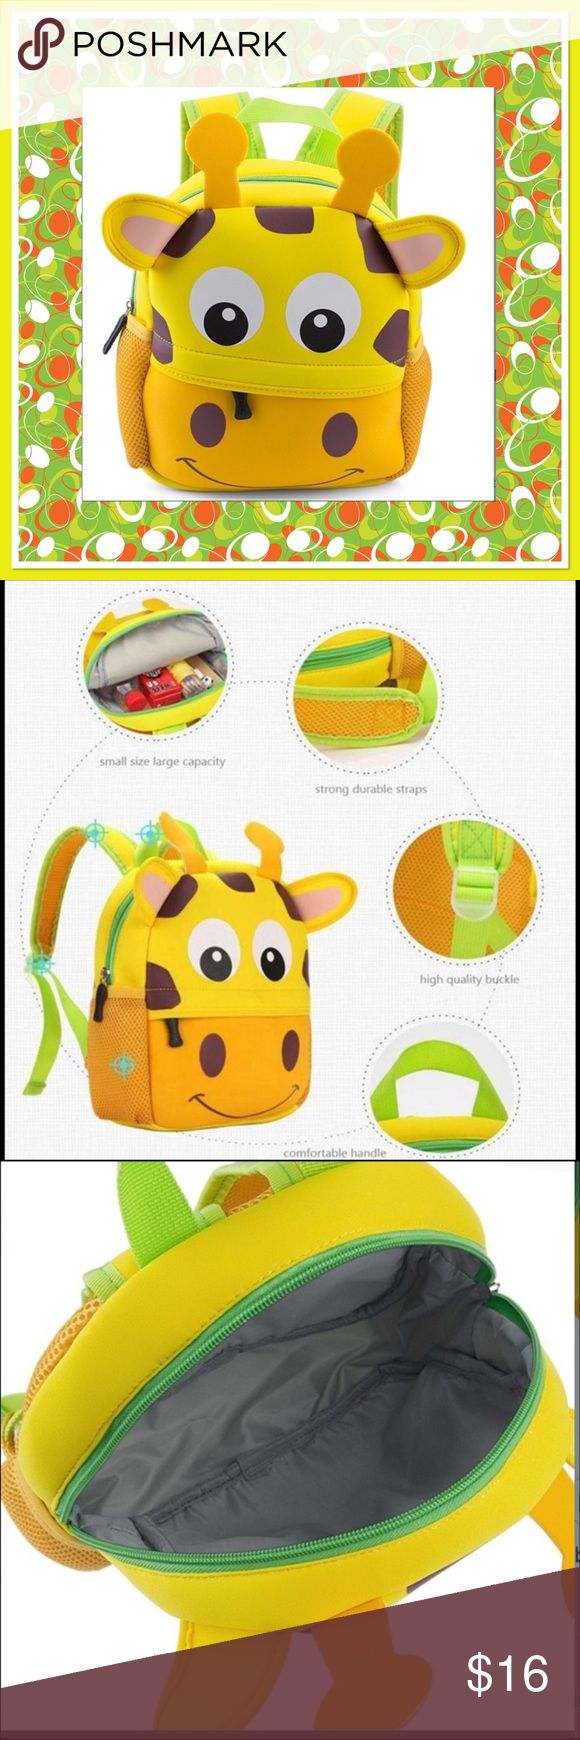 "Kids Cartoon School Bag Kids cartoon durable waterproof school bag, approx 10"" x 10"", fully lined, side netting for small water bottle Accessories Bags"